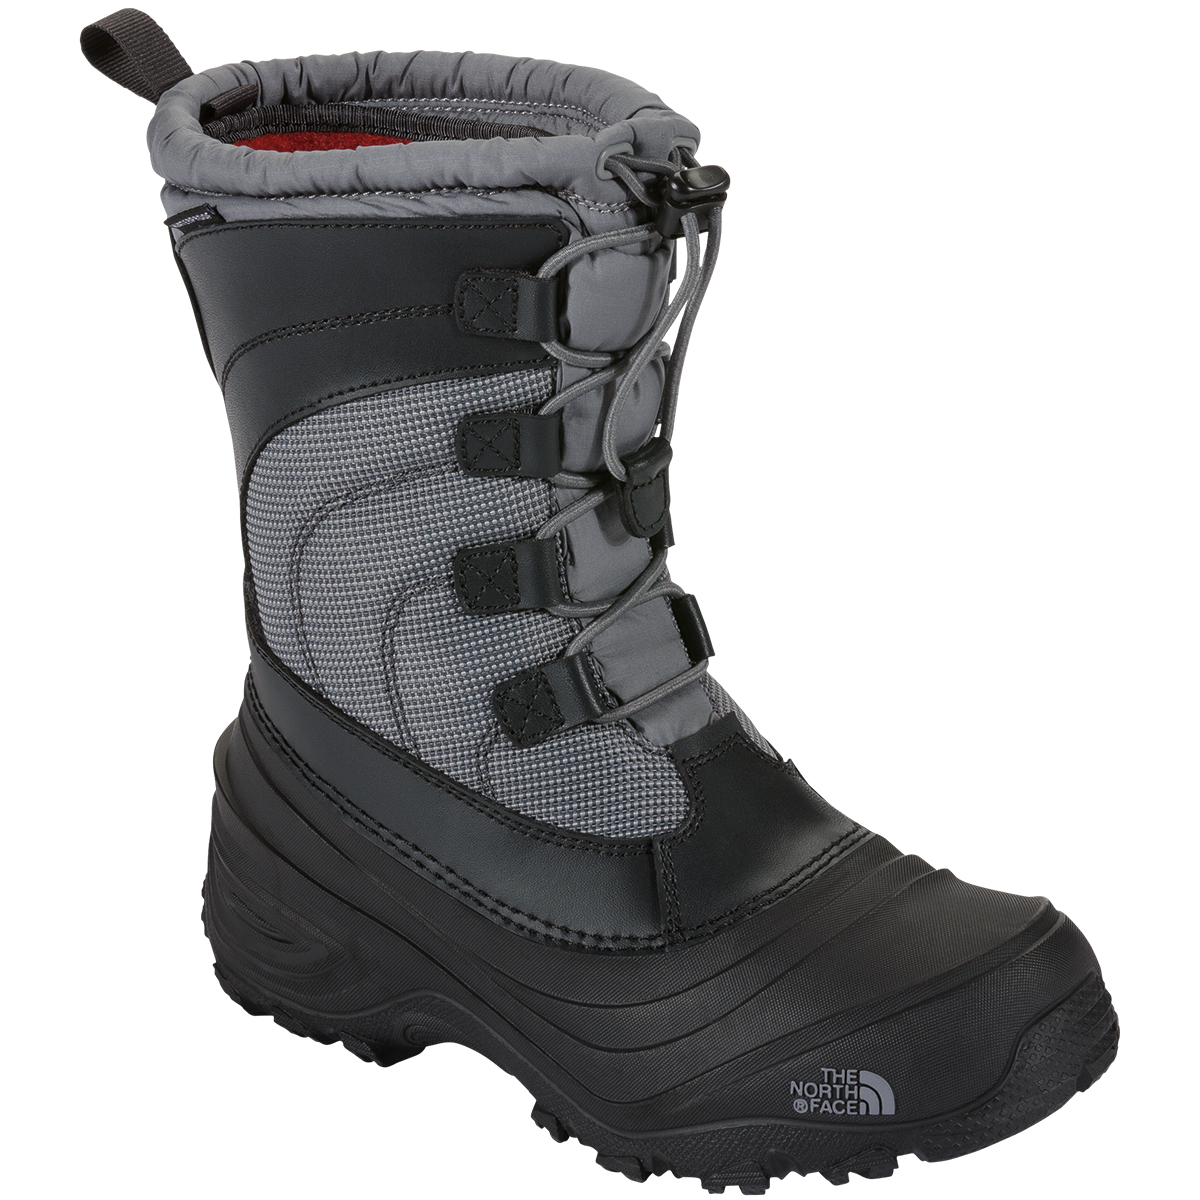 The North Face Kids' Alpenglow Iv Winter Boot - Black, 5